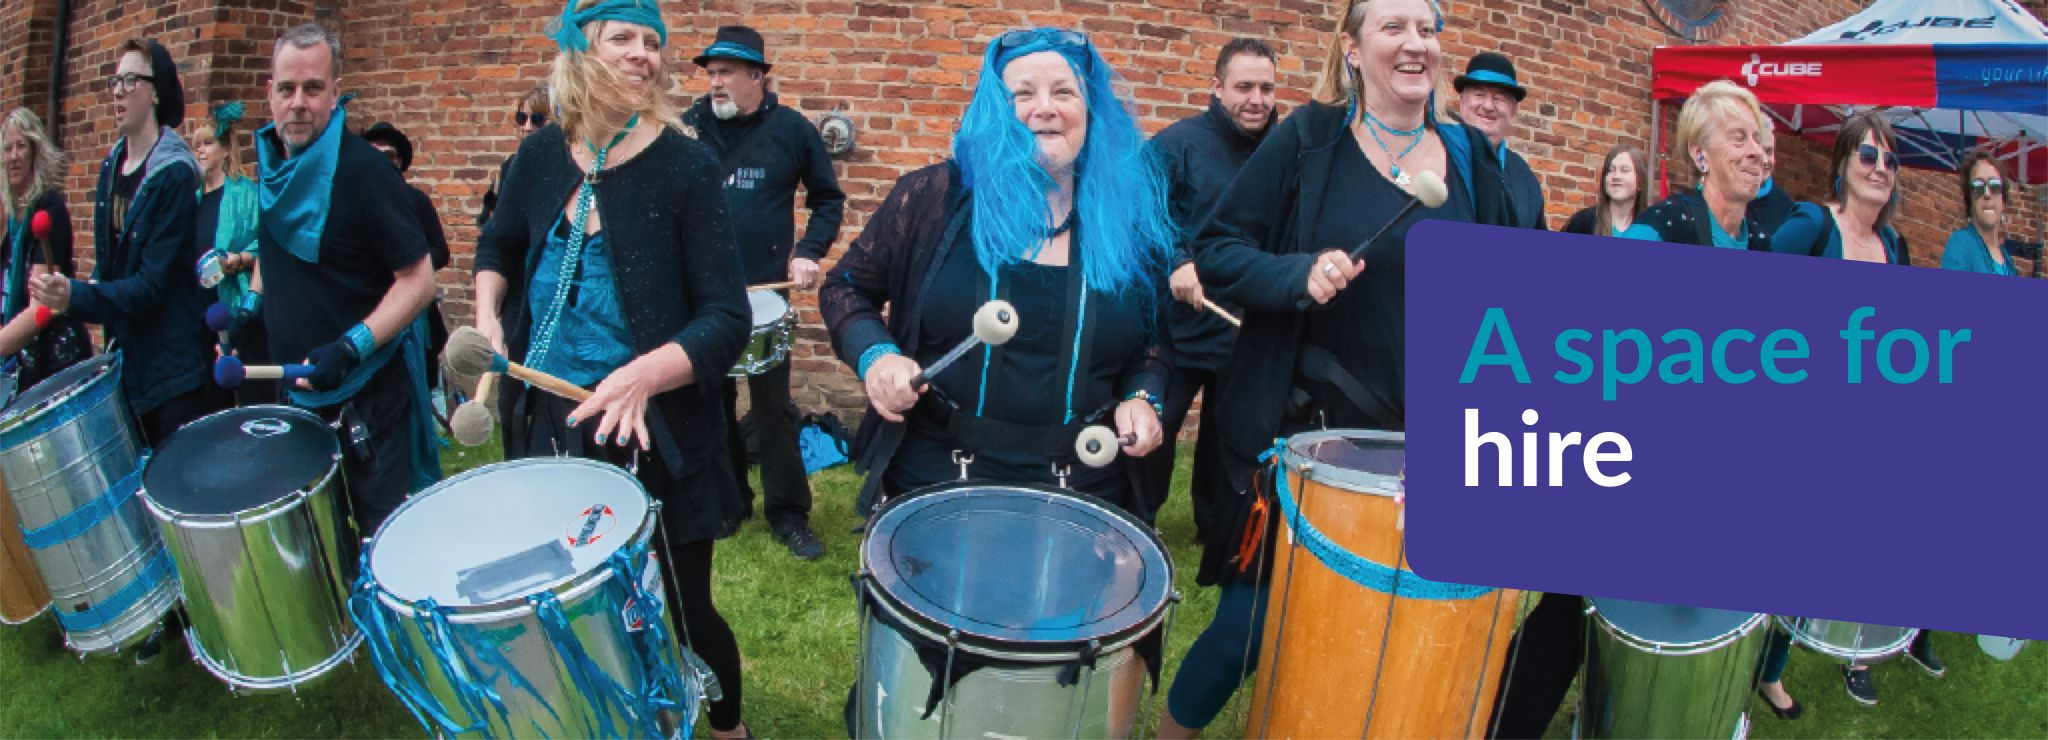 Text reads A space for hire - Image shows a drum outfit playing together